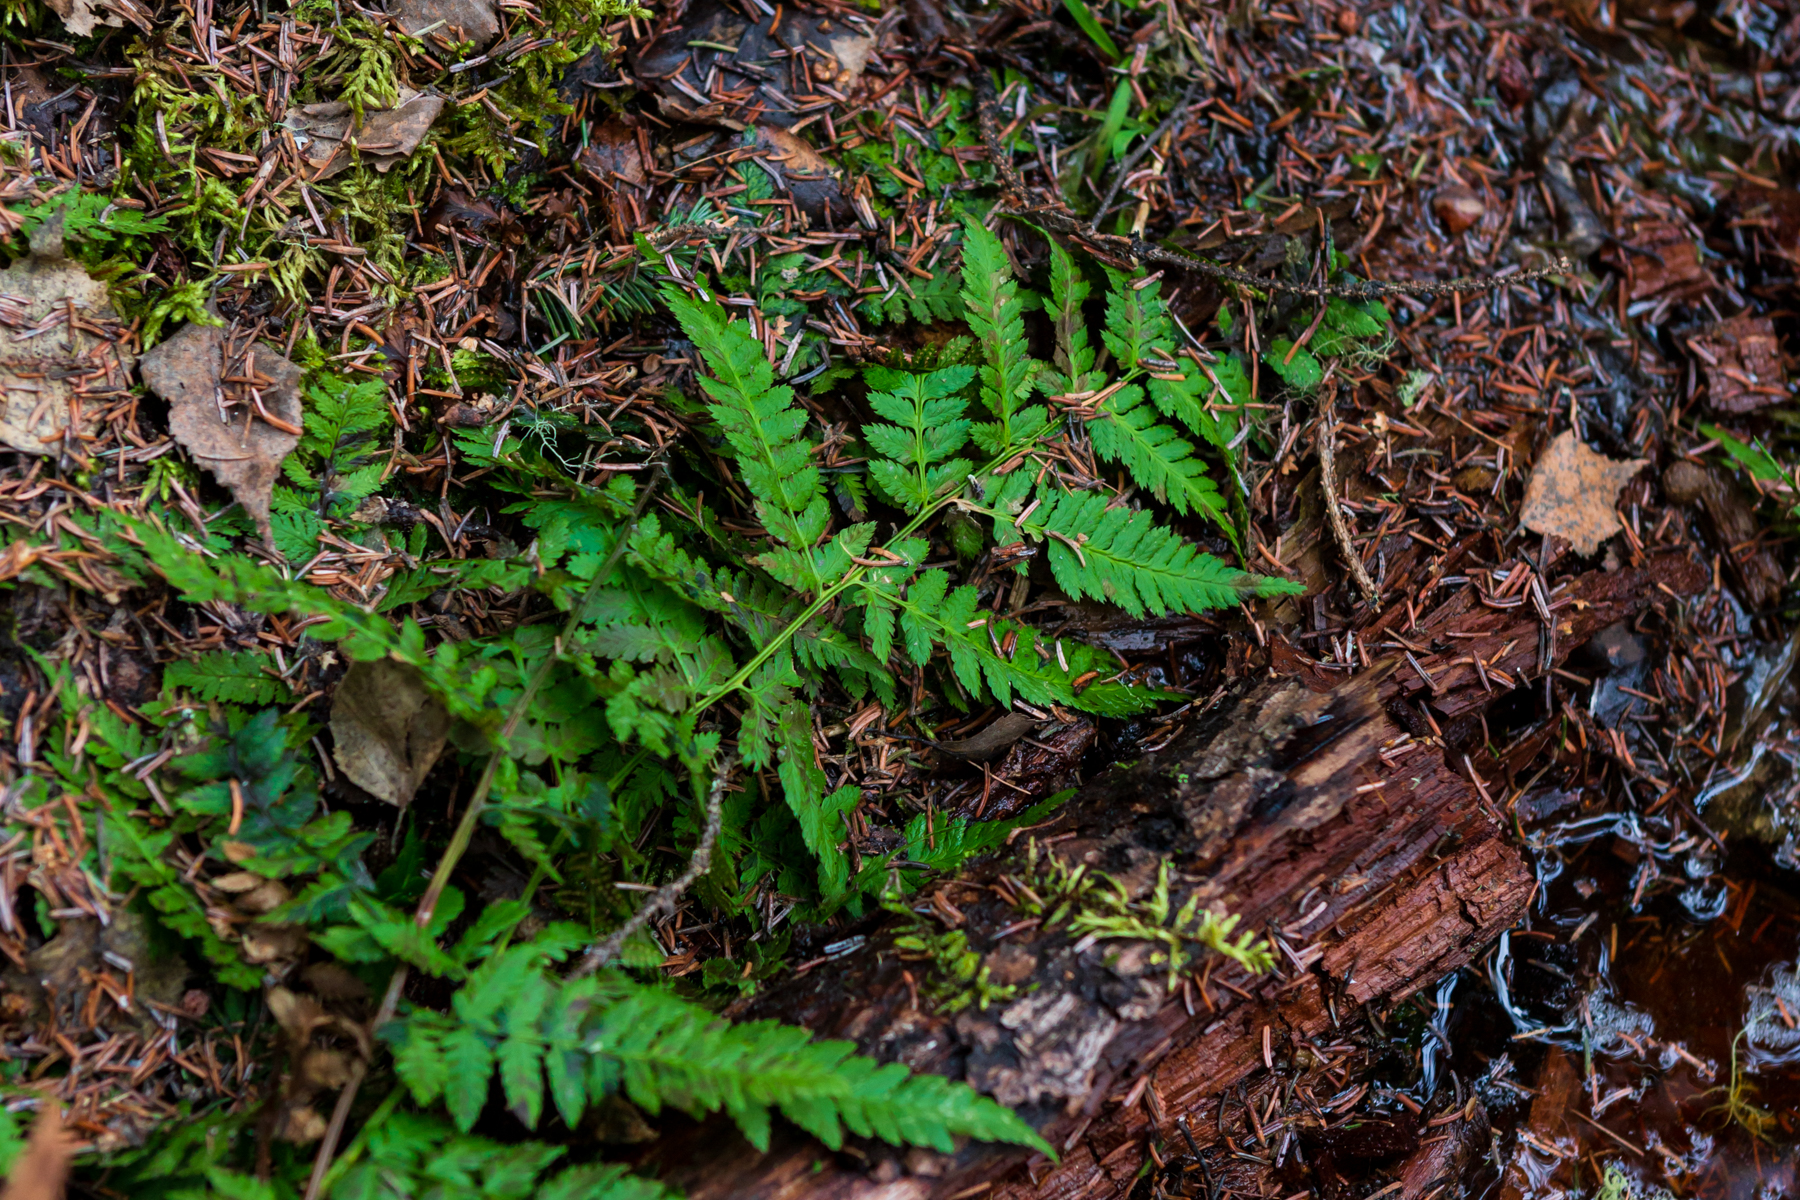 fern growing in a wet area of a forest